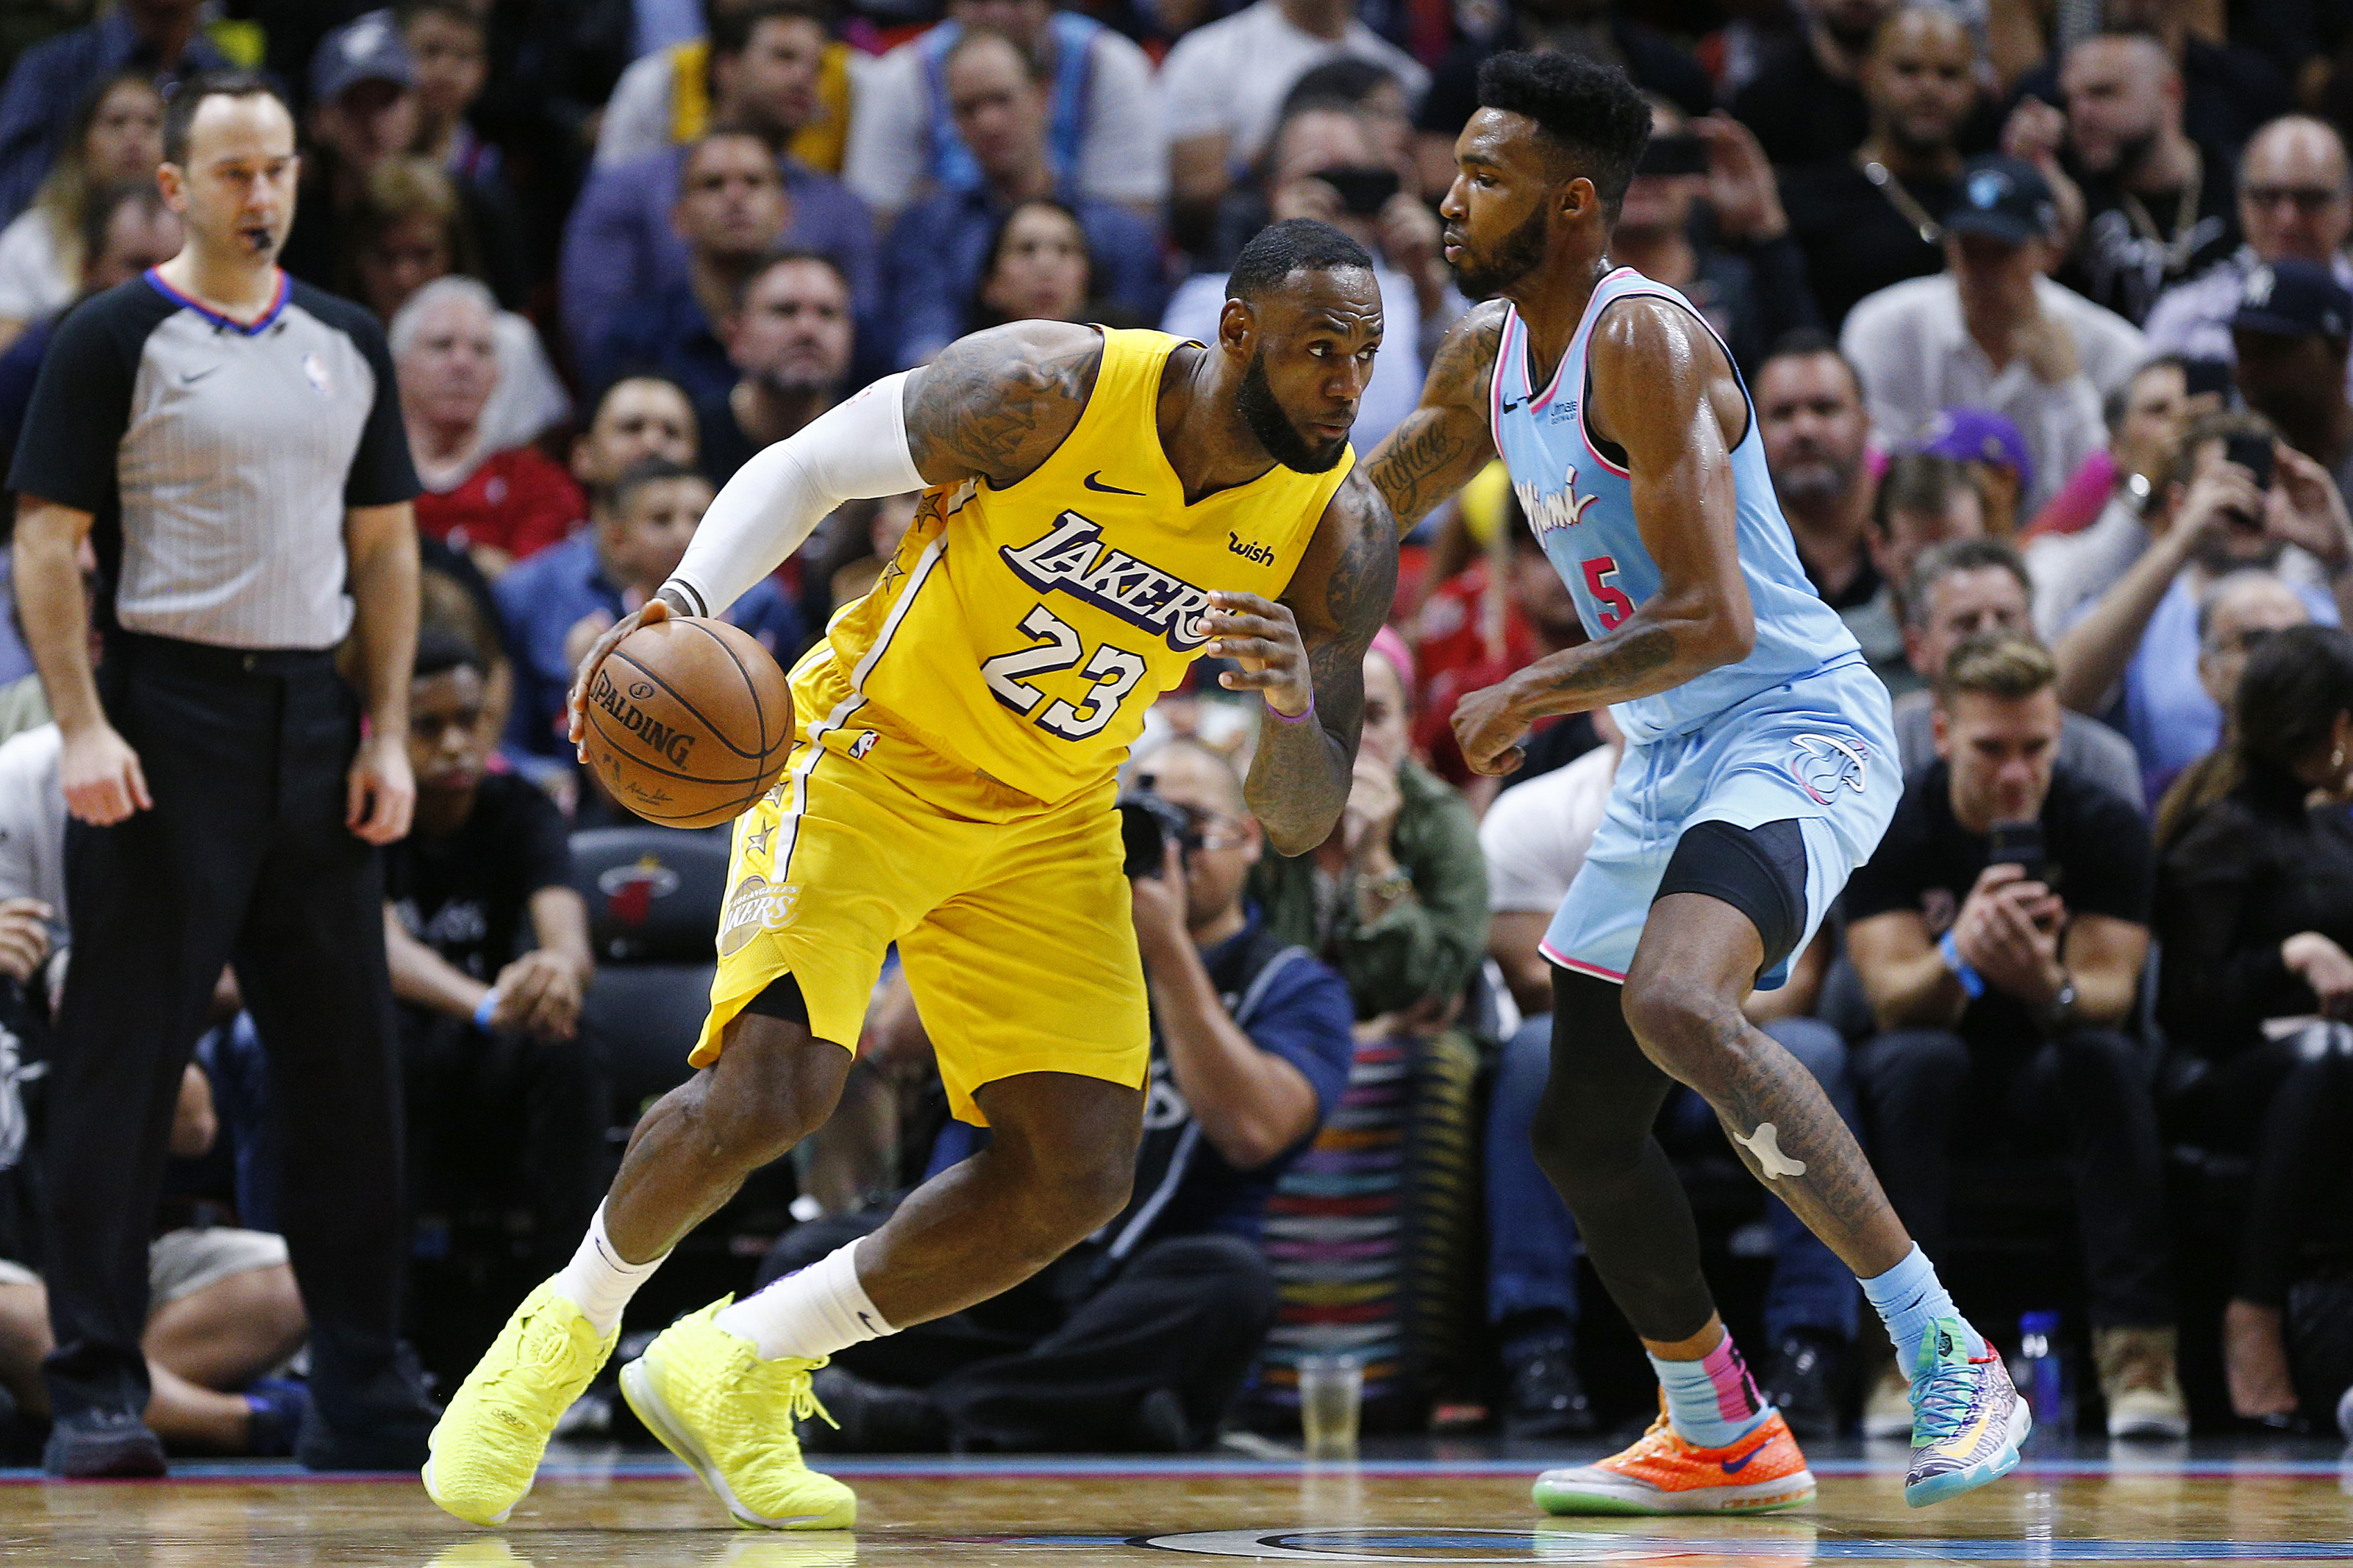 Nba Finals How To Stream Miami Heat Vs Los Angeles Lakers Game 1